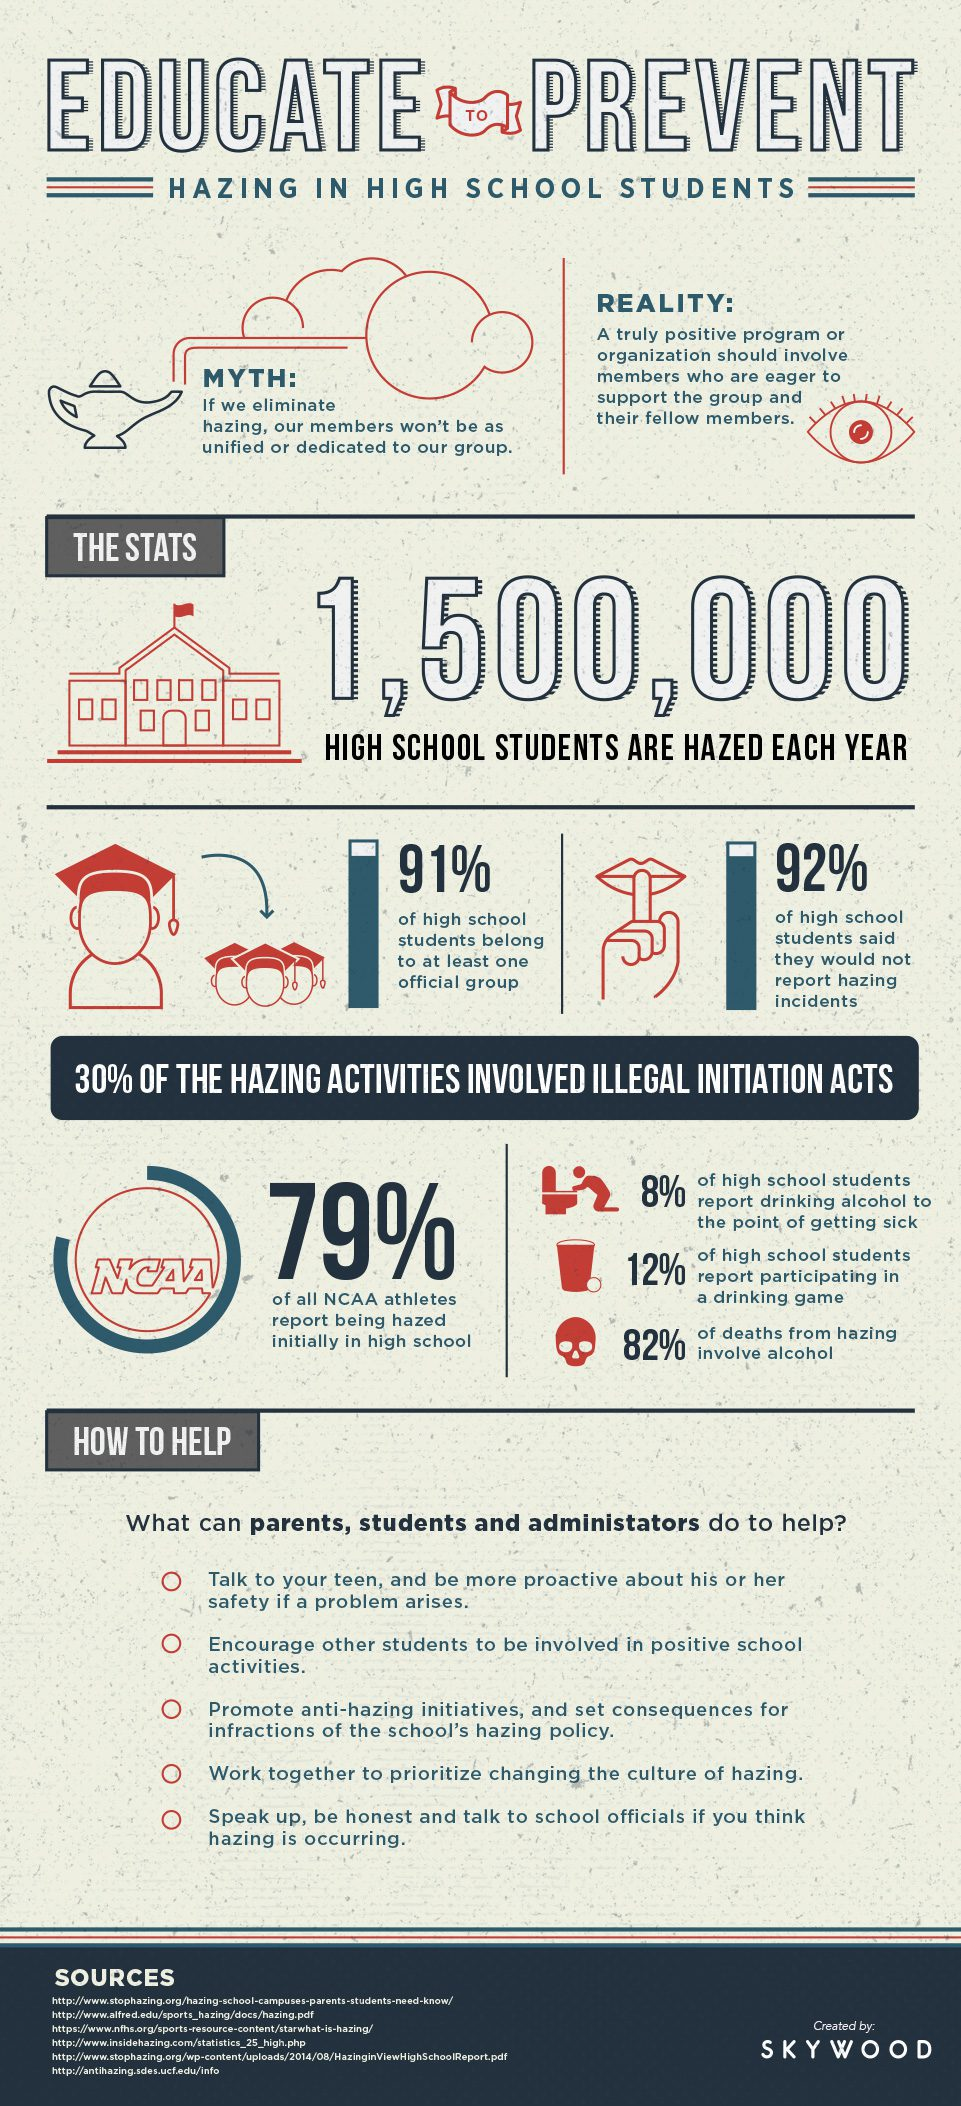 high-school-hazing-athletes-athletics-initiation-substance-use-in-students